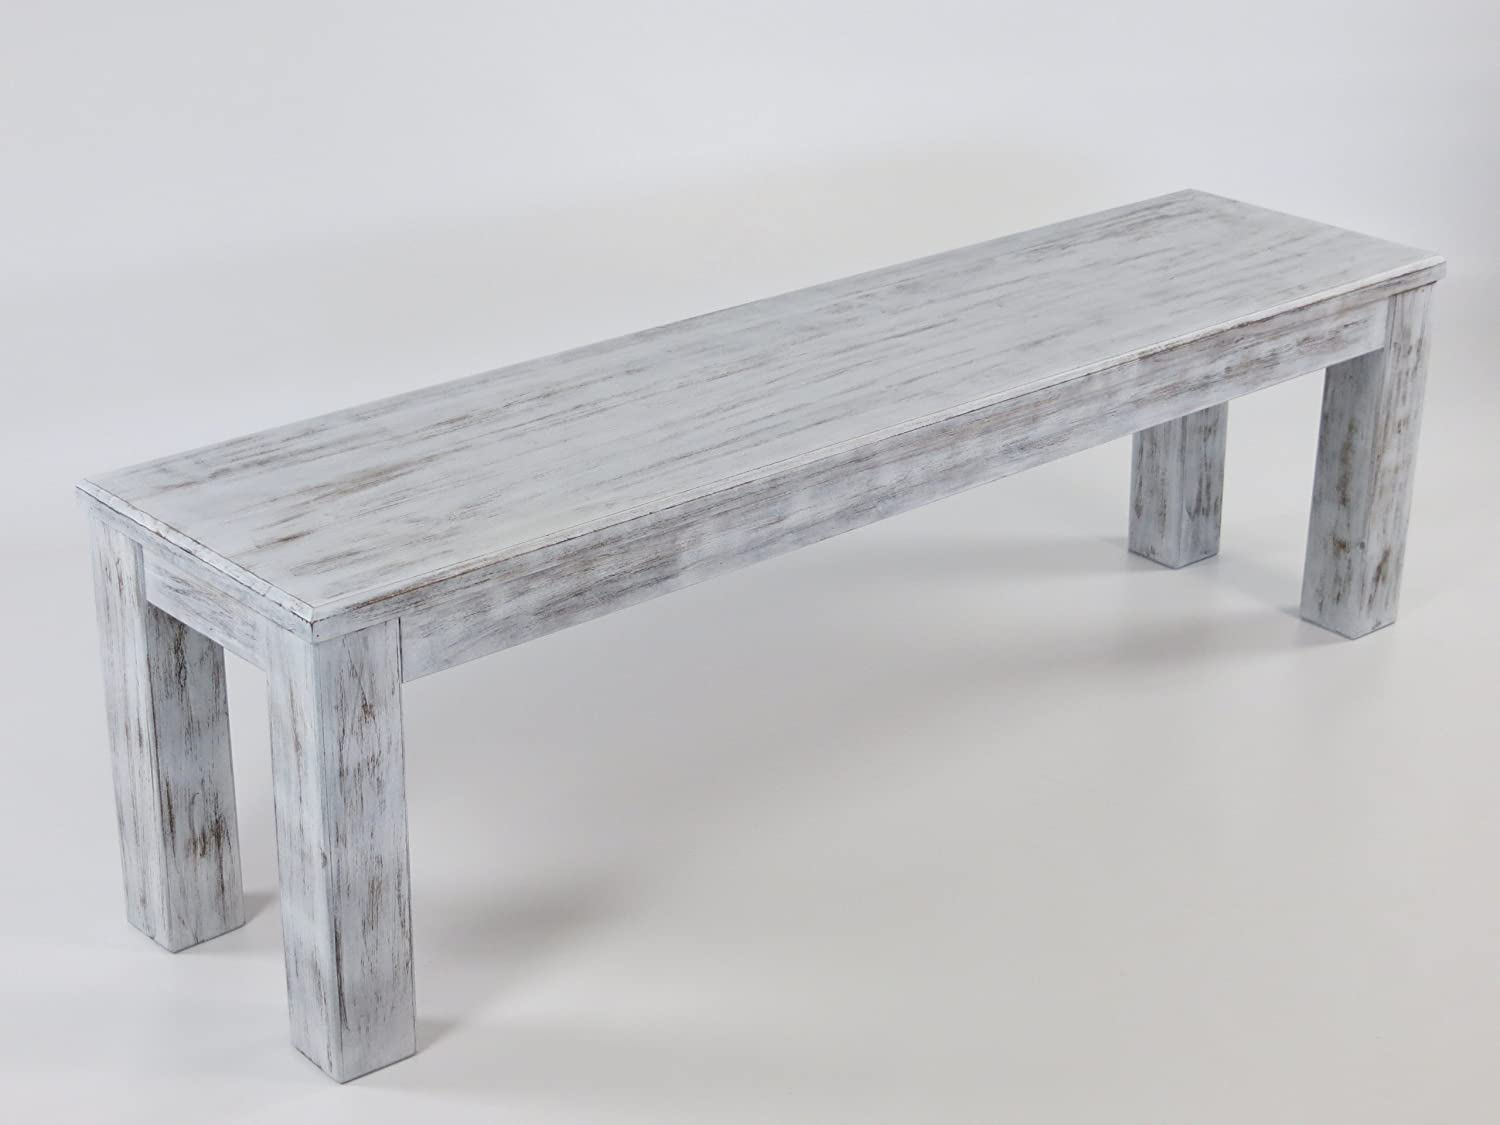 MassivholzmÖbel Kuckuck Bench 120 X 38 Cm Oak Antique Shabby Antique White Colour - Pine Wood Bank Oiled And Waxed